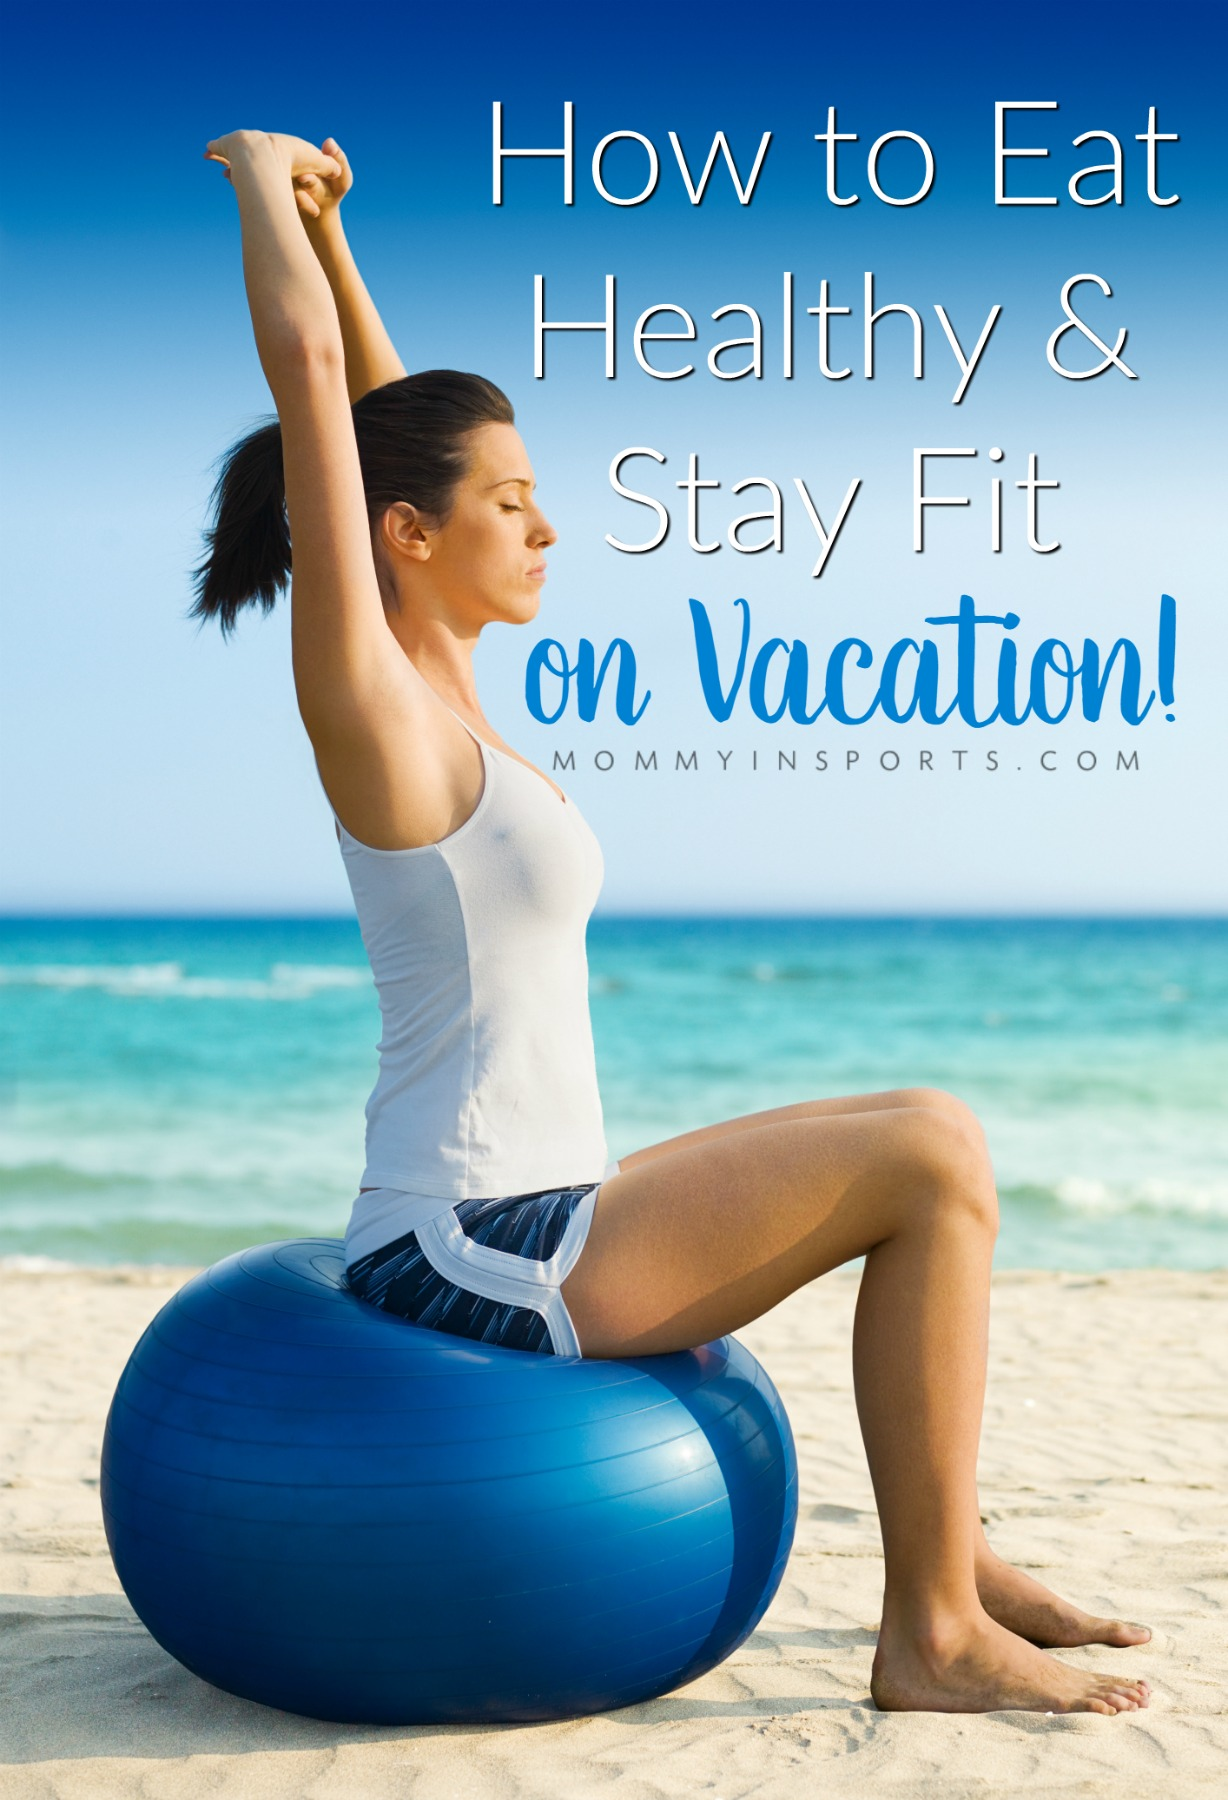 Heading out on a vacation? It's hard to diet and exercise sometimes, but there are ways to not overindulge too much! Read these tips on how to eat healthy & stay fit on vacation!